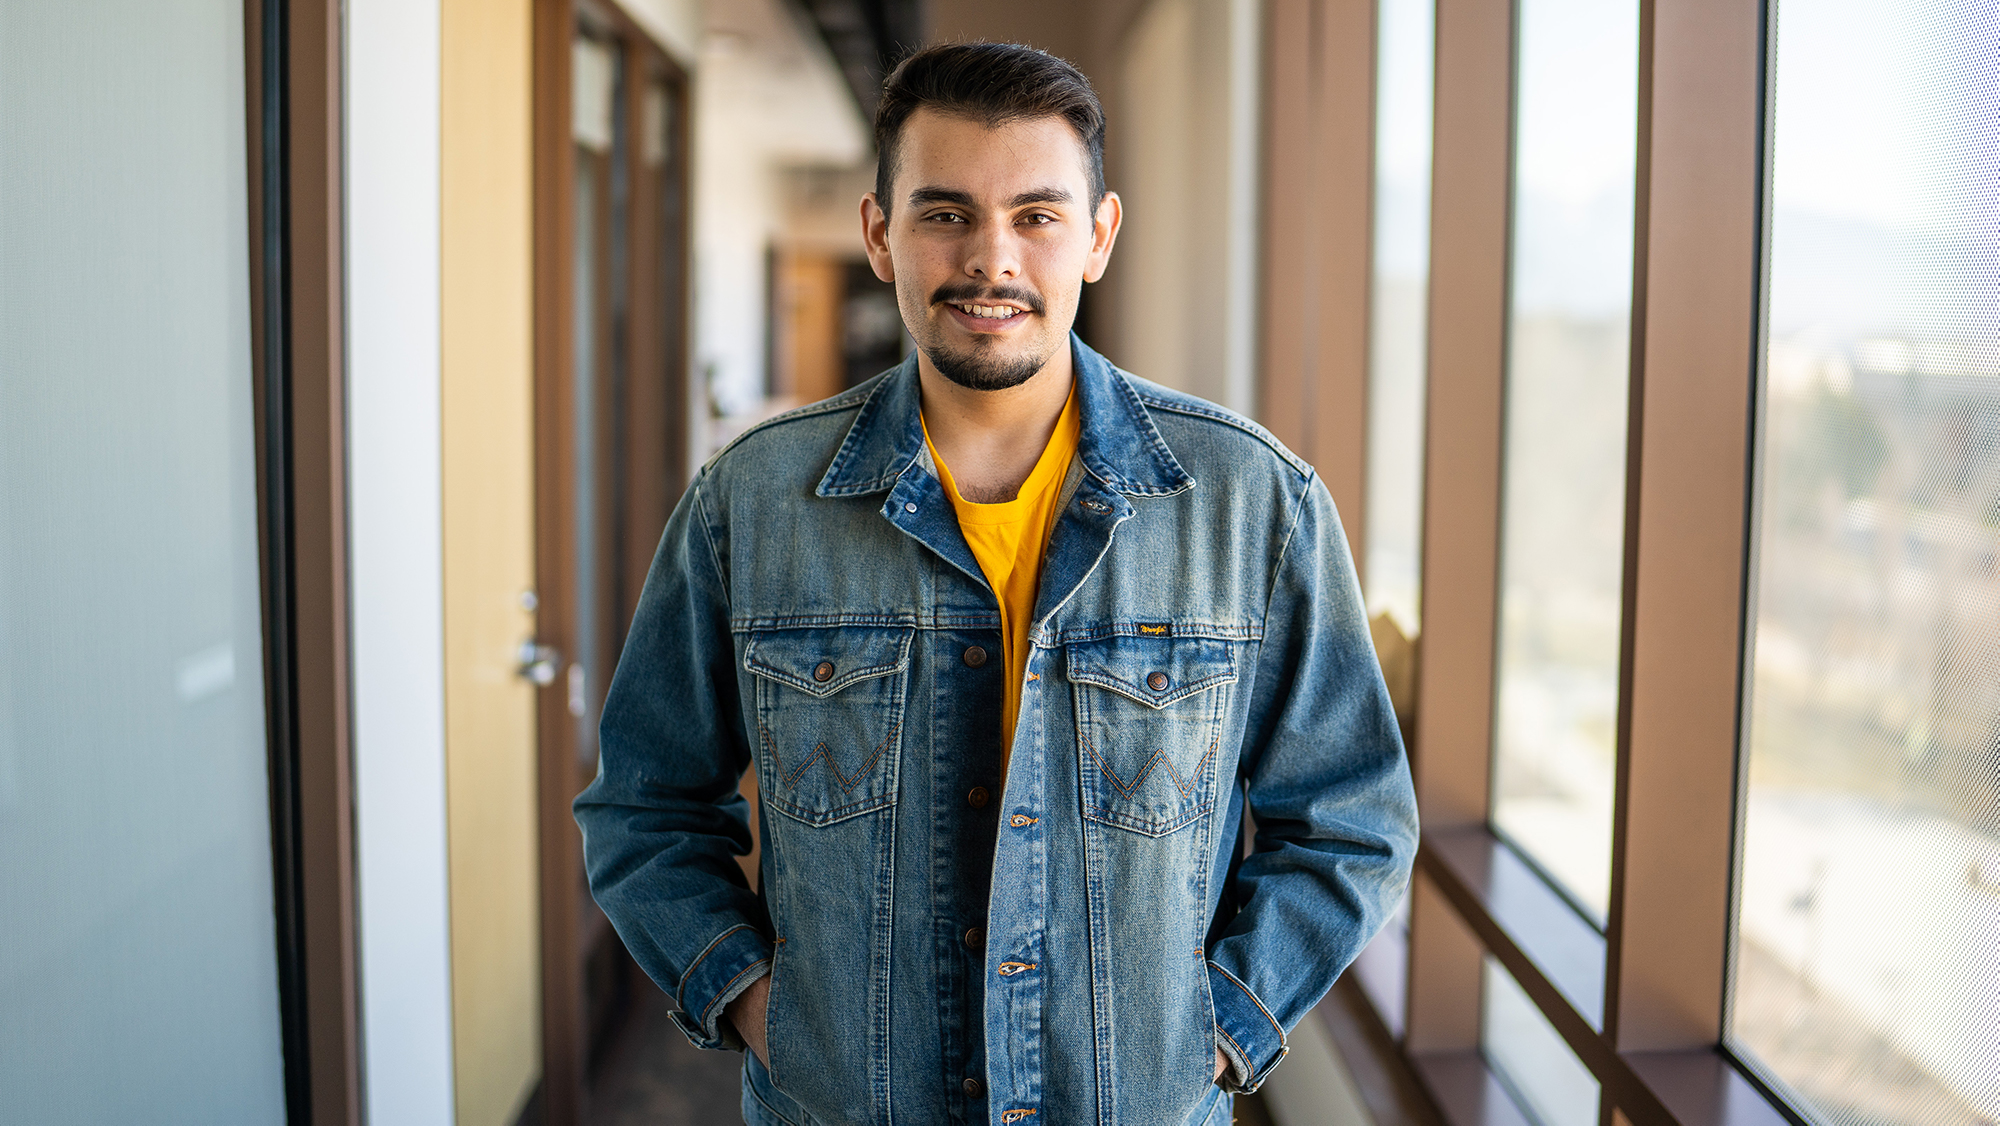 Latino male student wearing jean jacket poses for photo